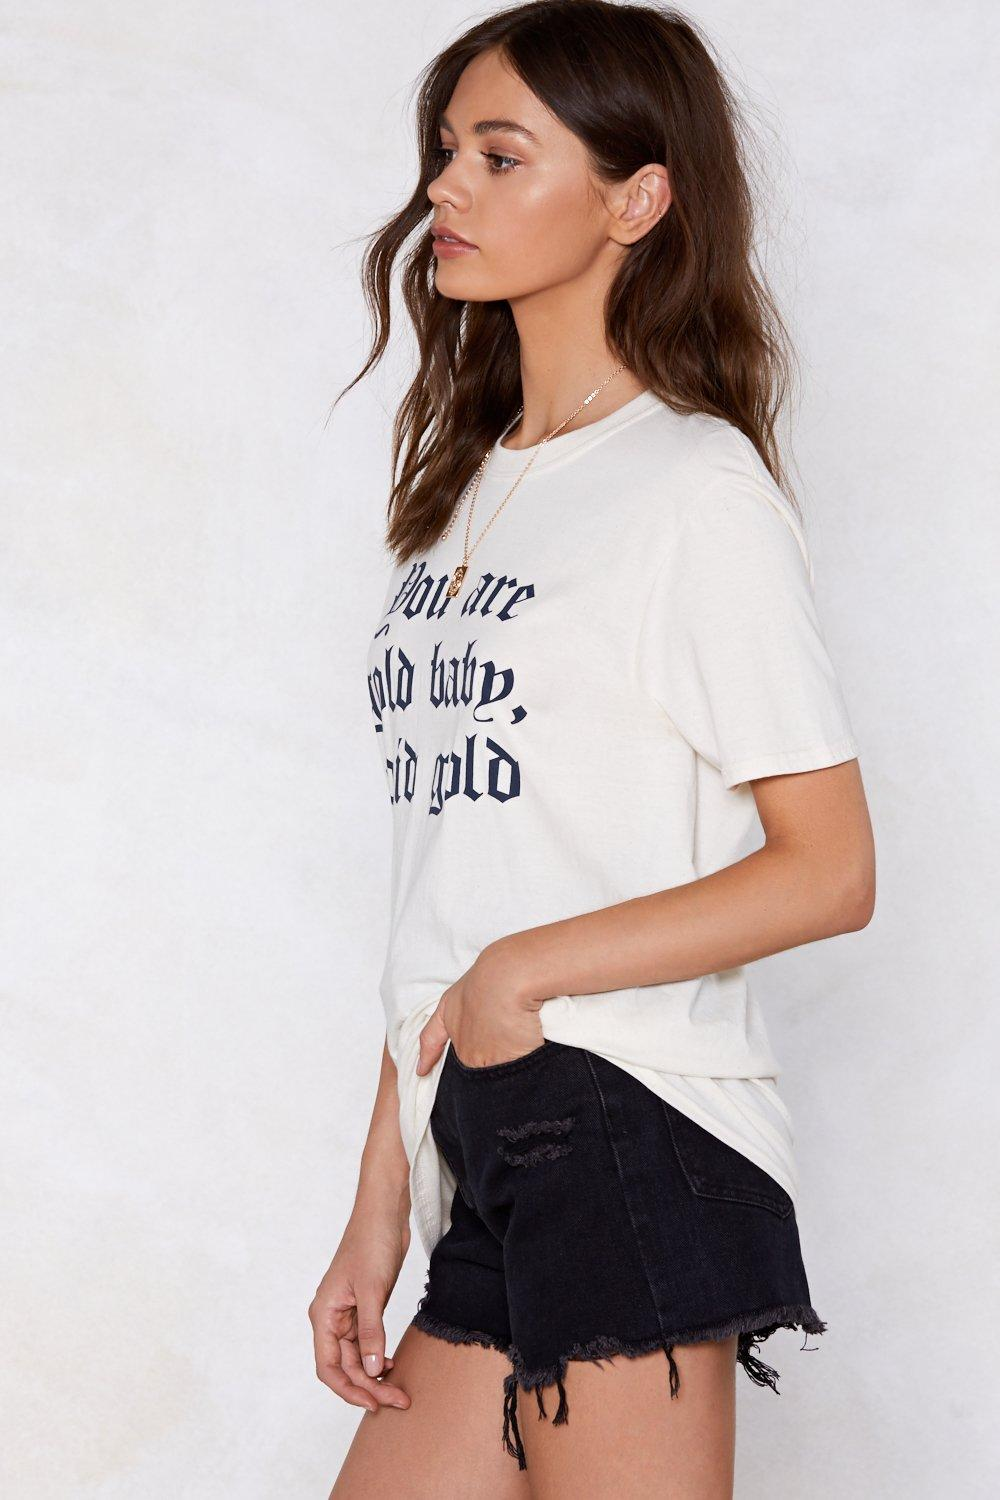 a793aa02d1b9 You Are Gold Tee   Shop Clothes at Nasty Gal!